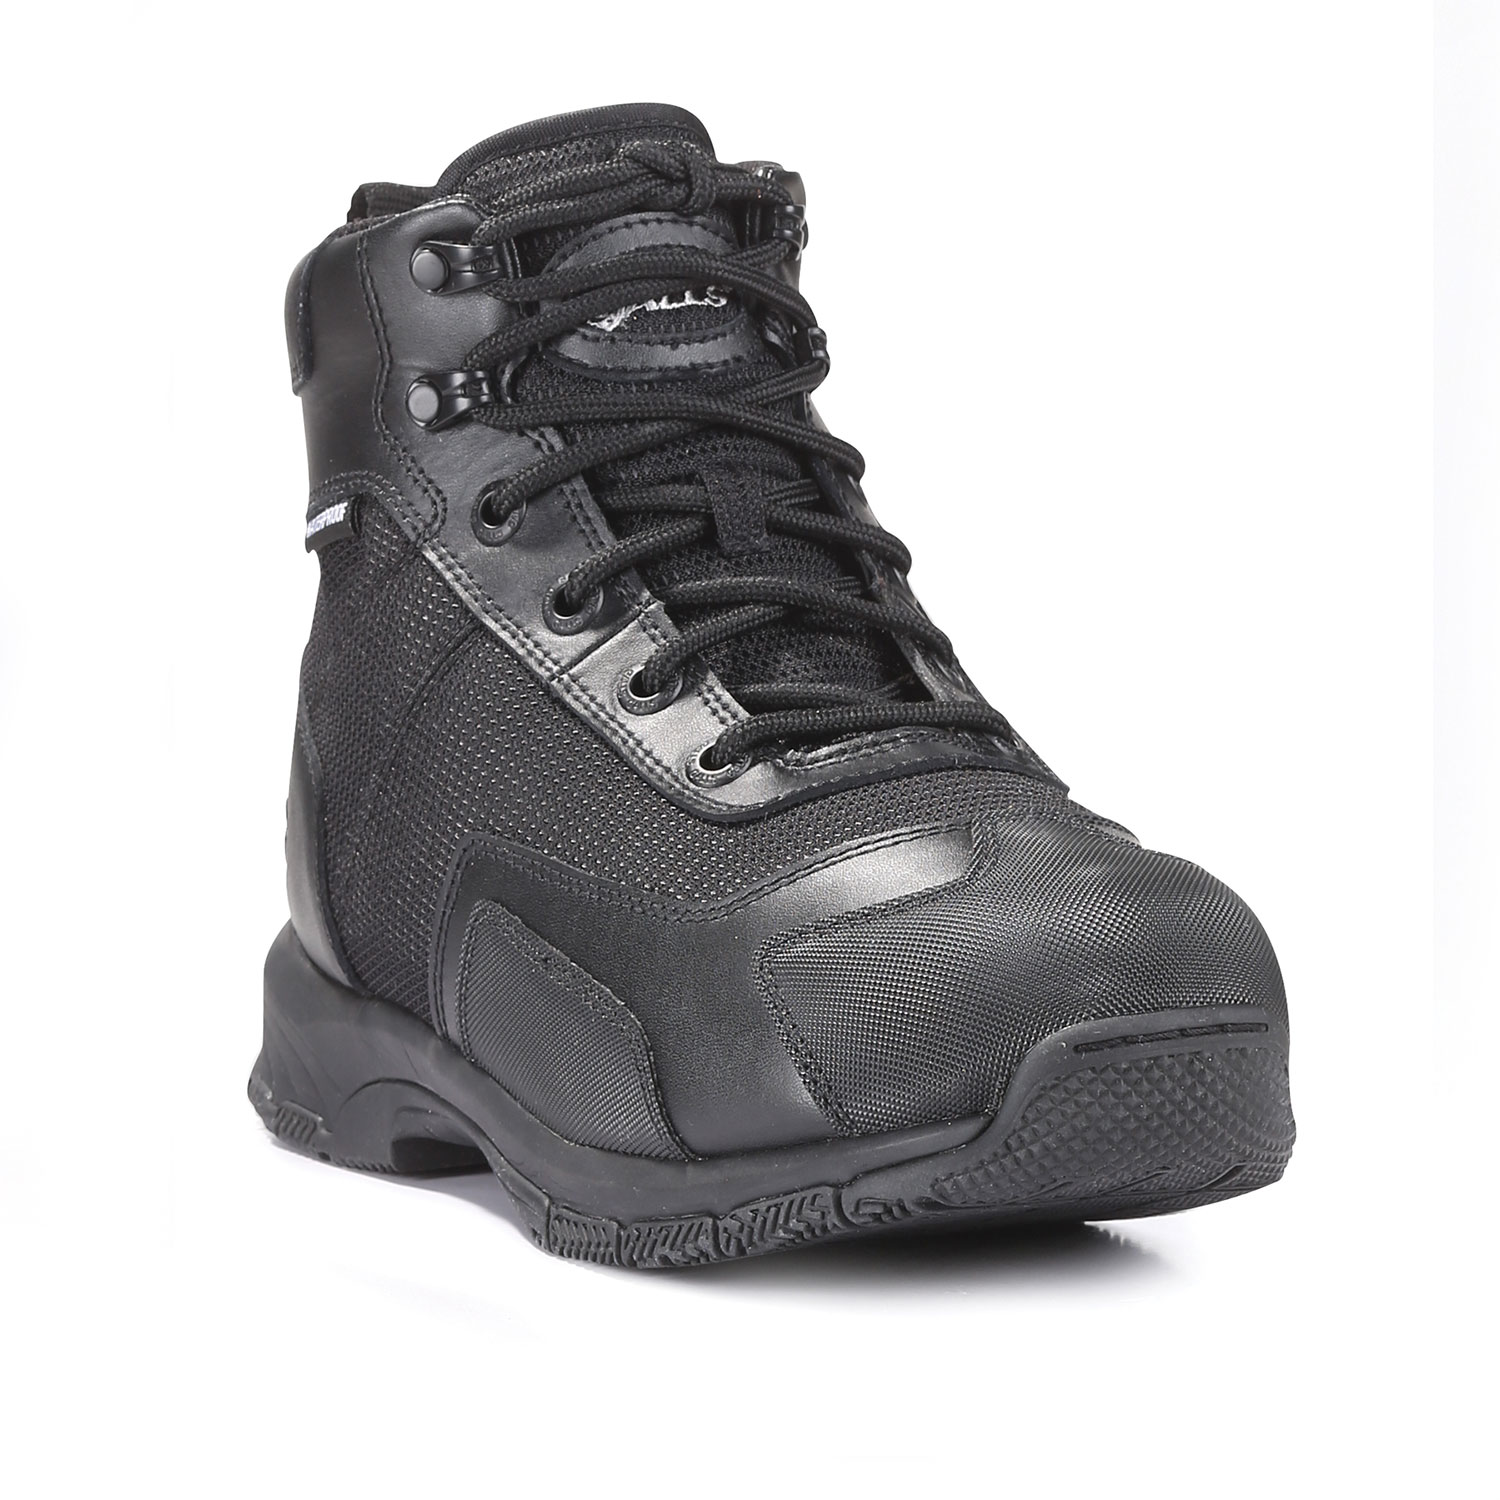 "Galls G-TAC Athletic 6"" Side-Zip Waterproof Boot"